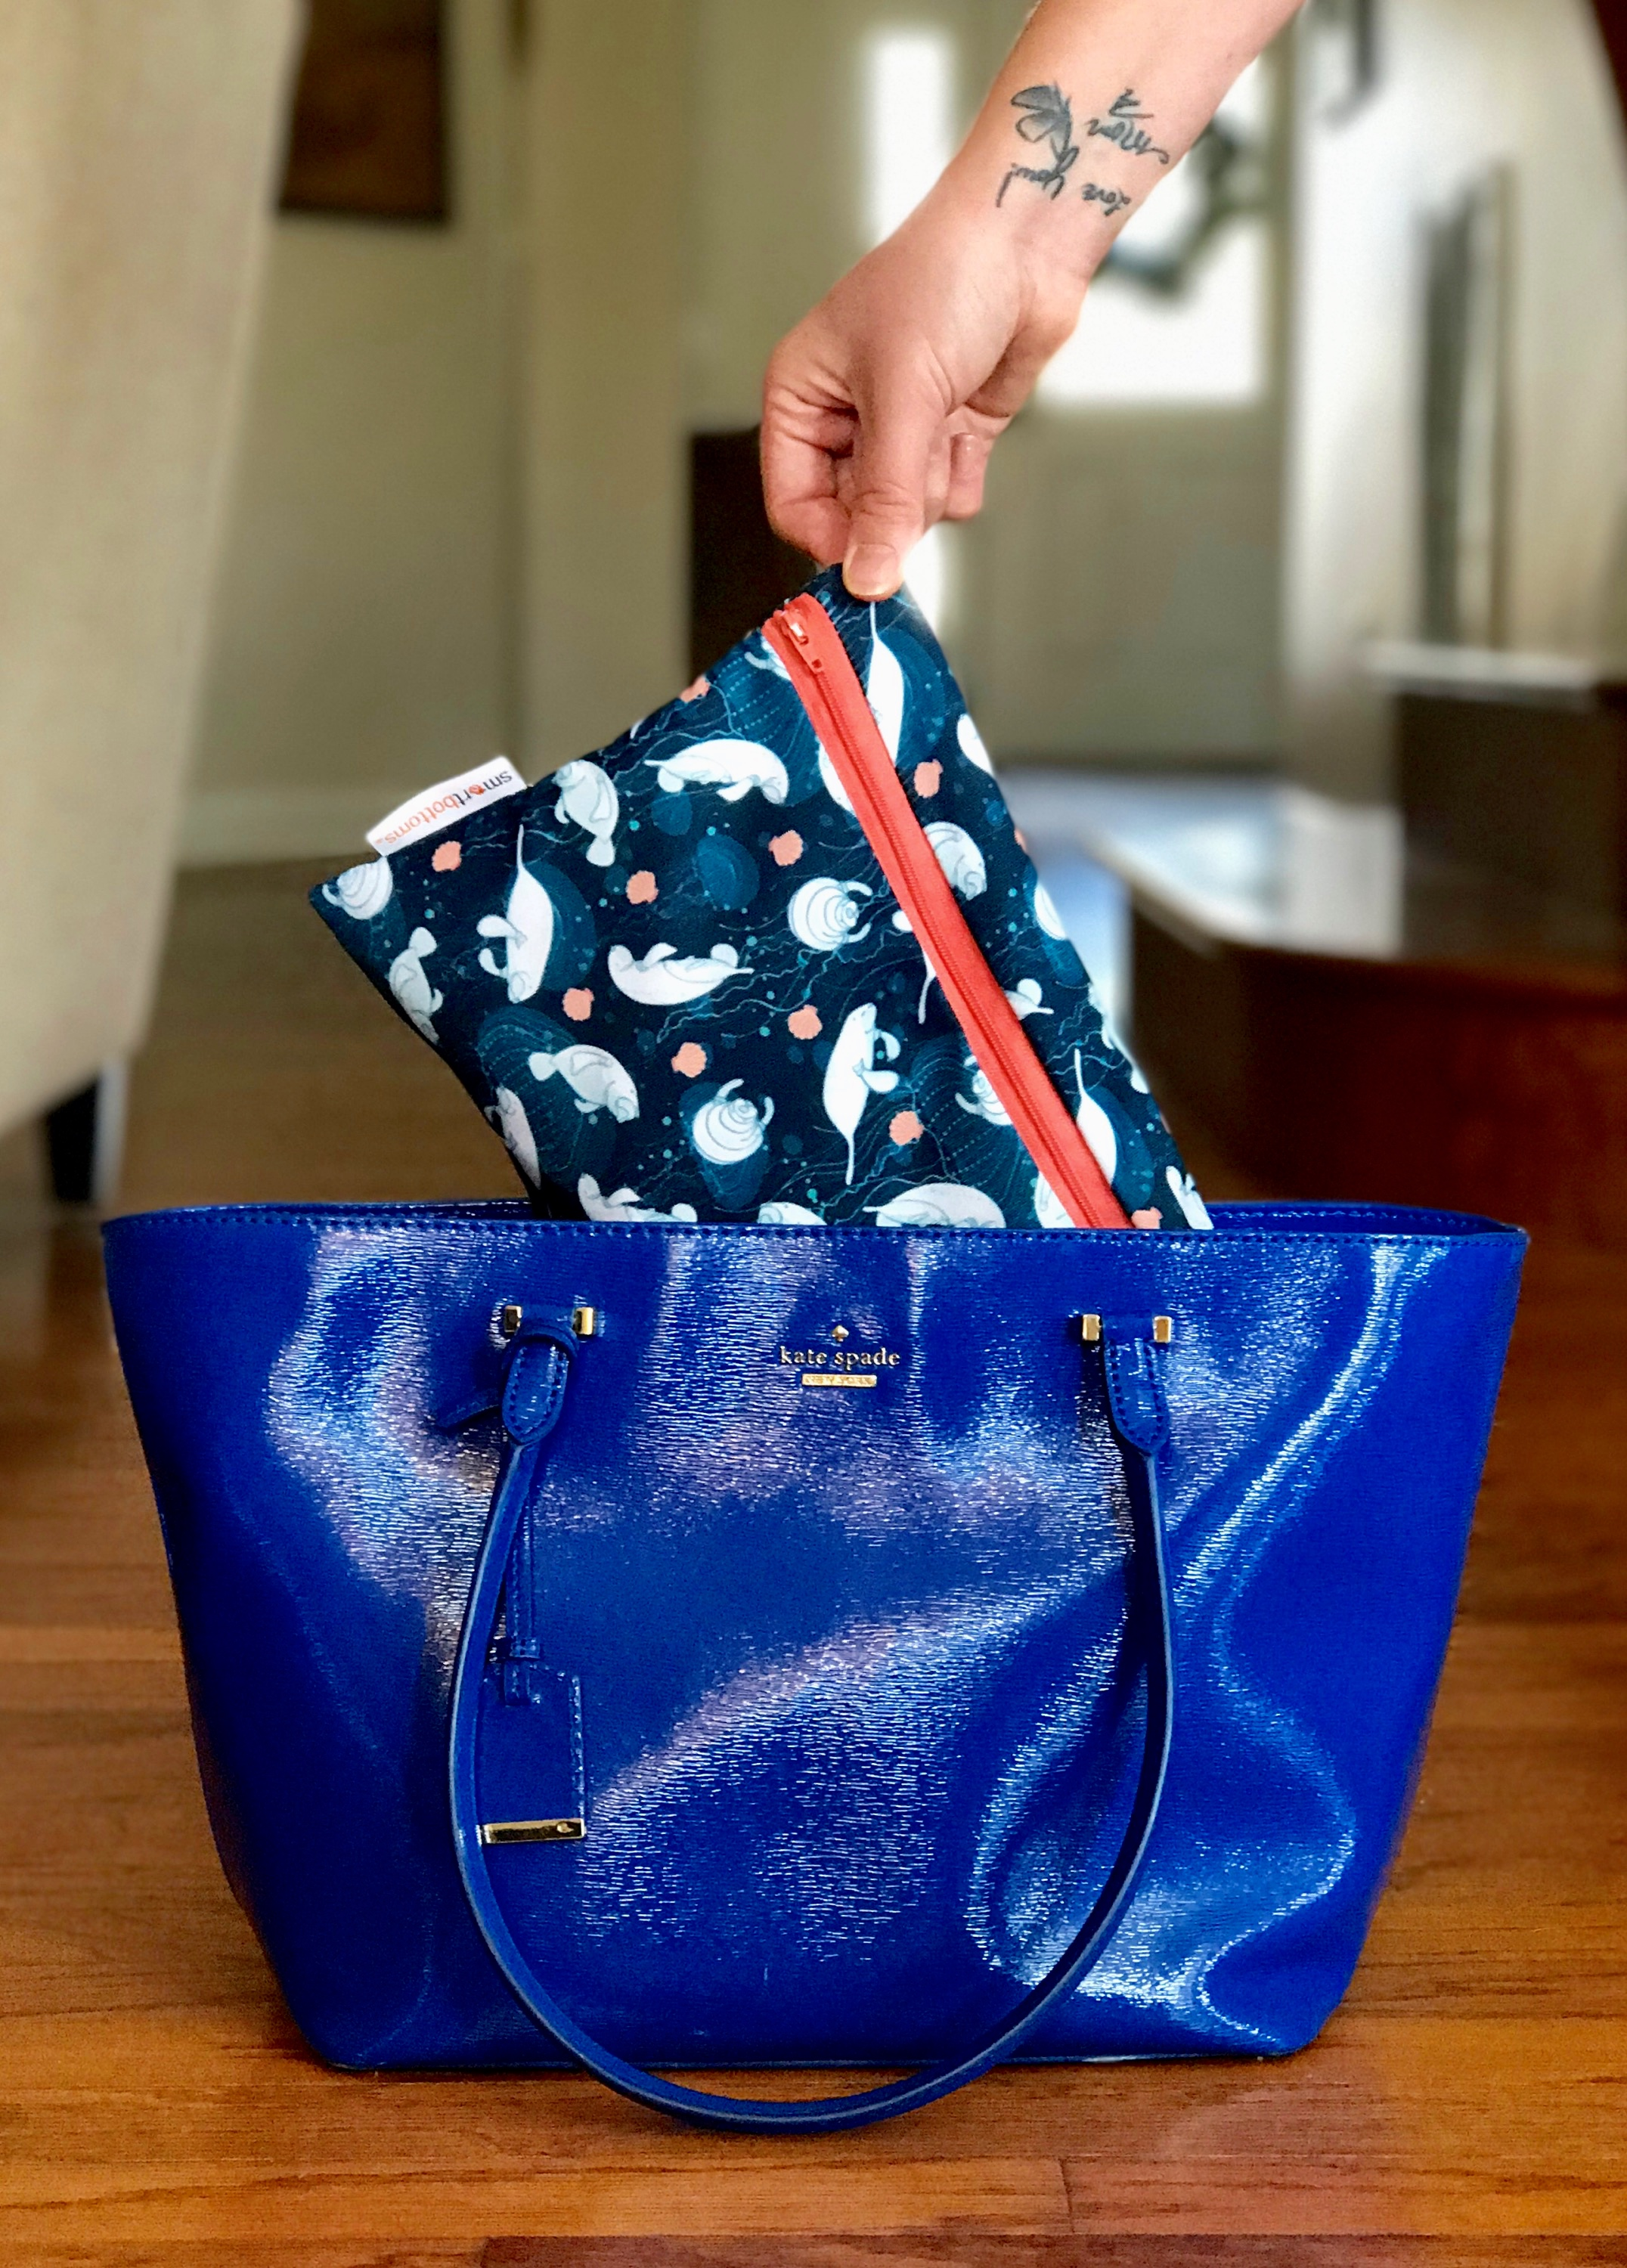 7818744da60b Using Wet Bags For More Than Cloth Diapers - Life With The Lucentes